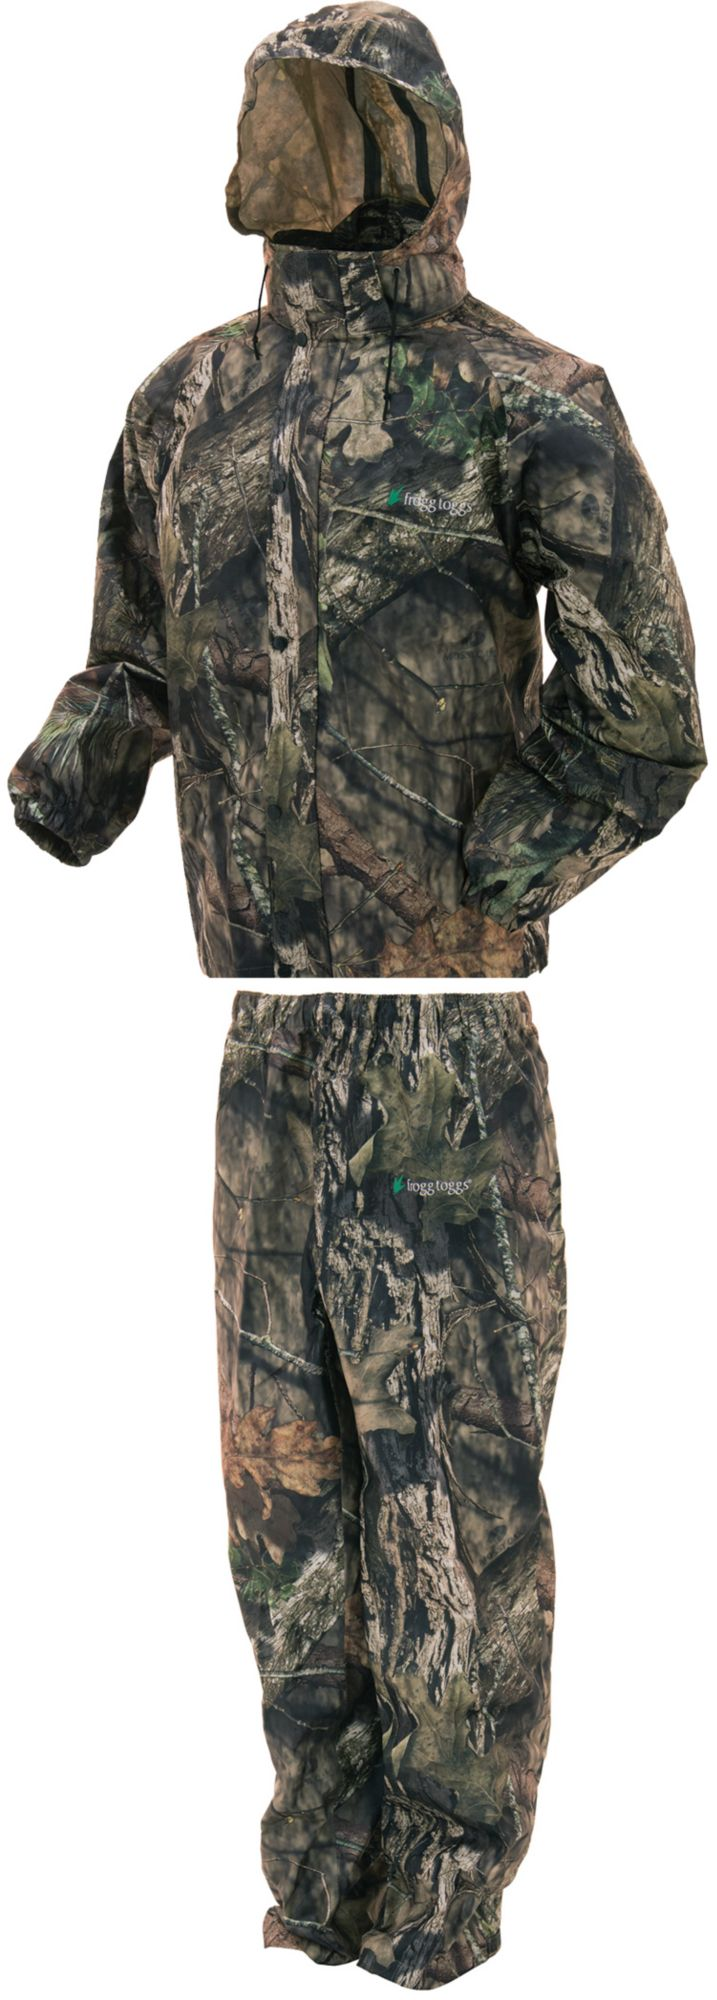 frogg toggs Men's All Sport Camo Rain Suit, Medium, Brown